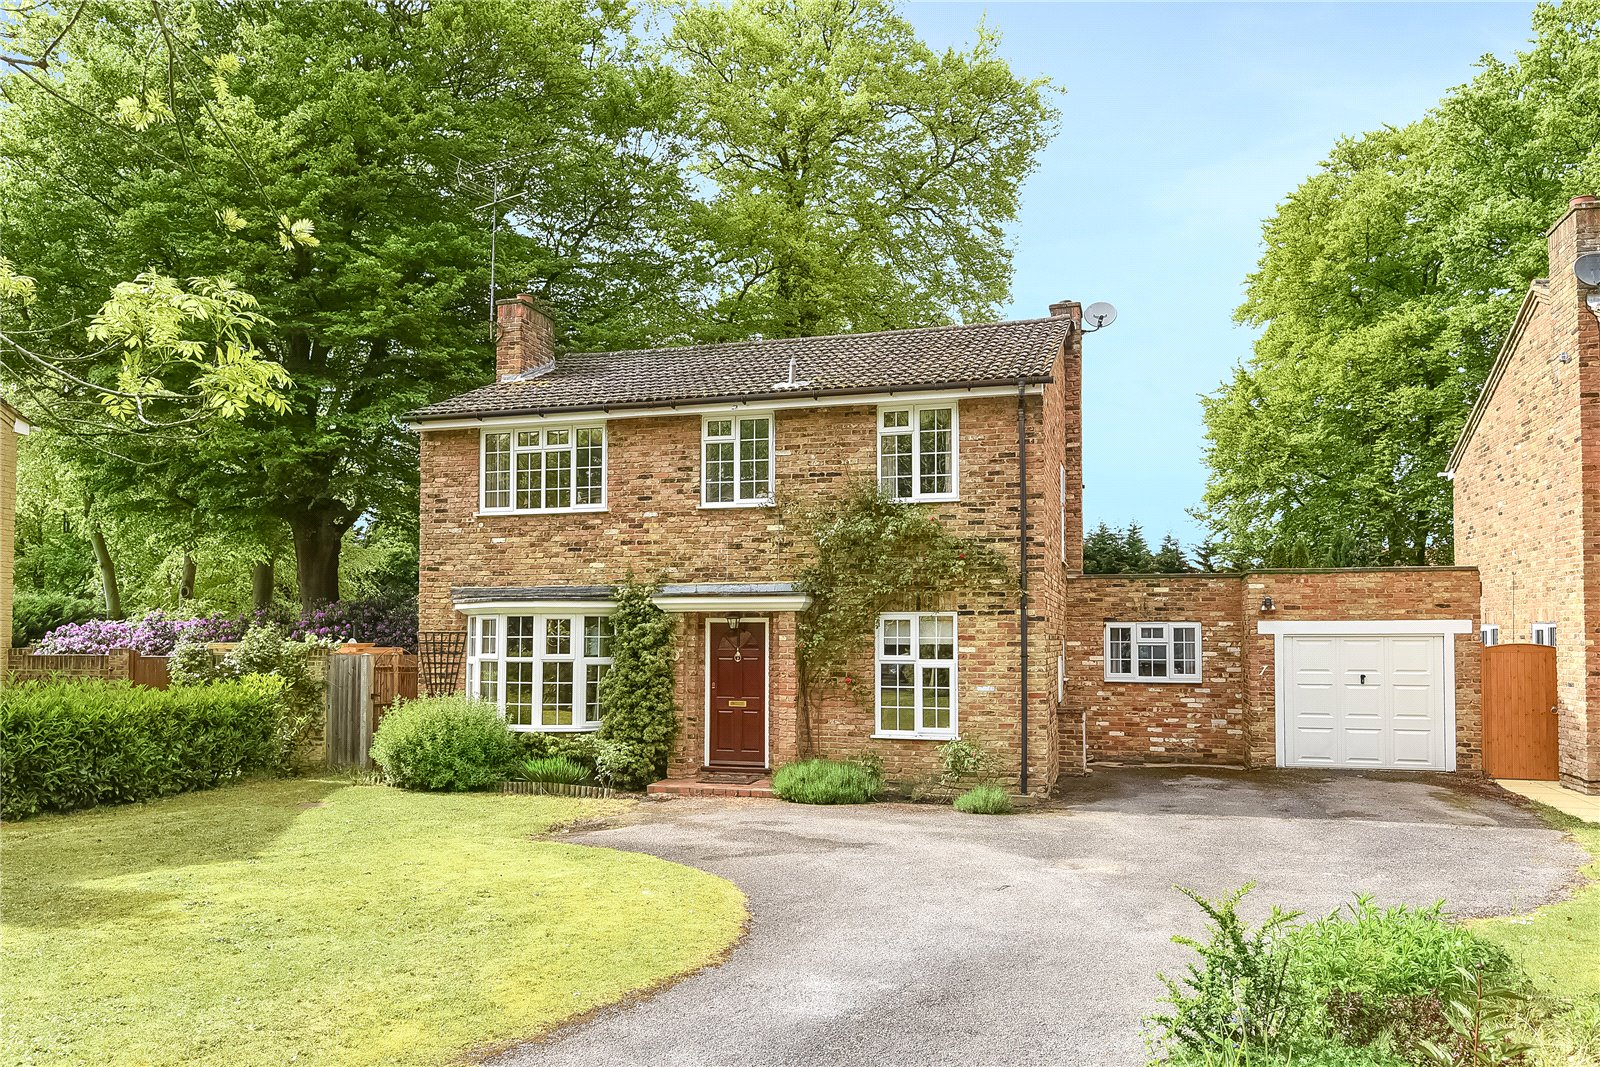 4 Bedrooms Detached House for sale in Shalbourne Rise, Camberley, Surrey, GU15